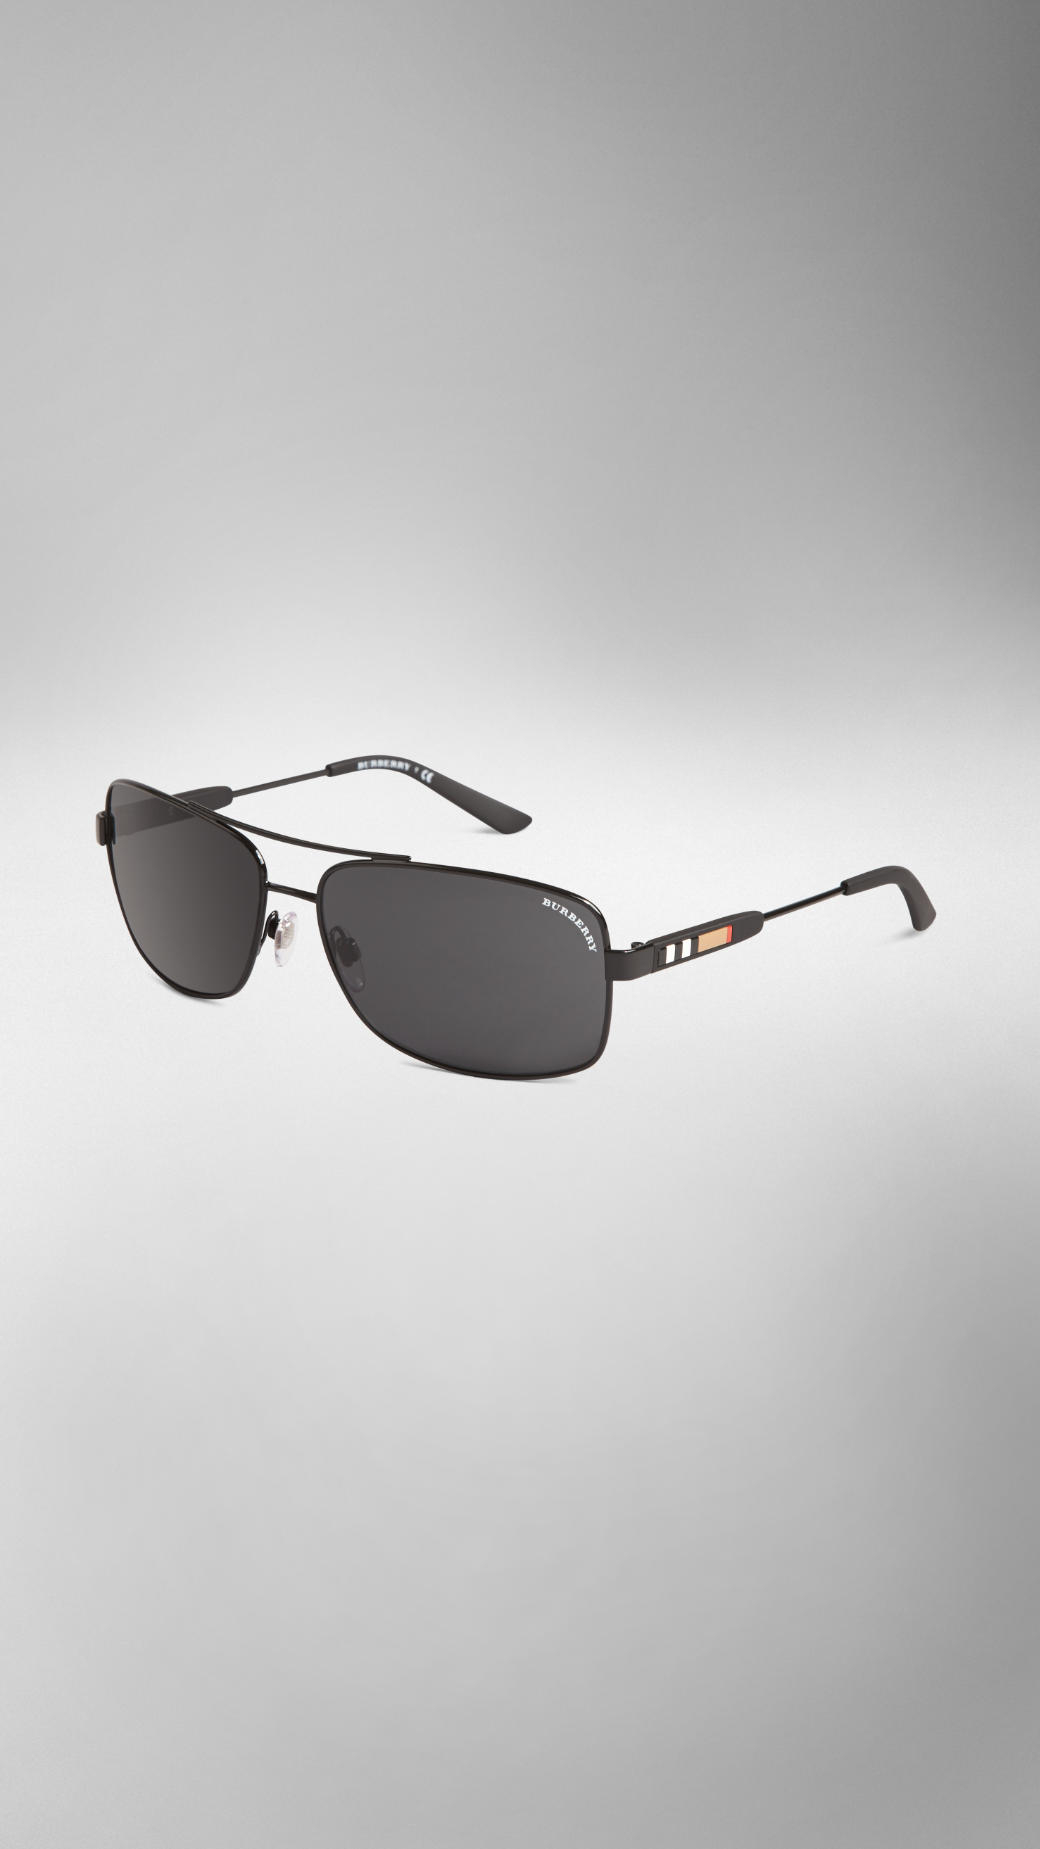 1bc8c24d0dd Lyst - Burberry Check Detail Metal Square Frame Sunglasses in Black ...